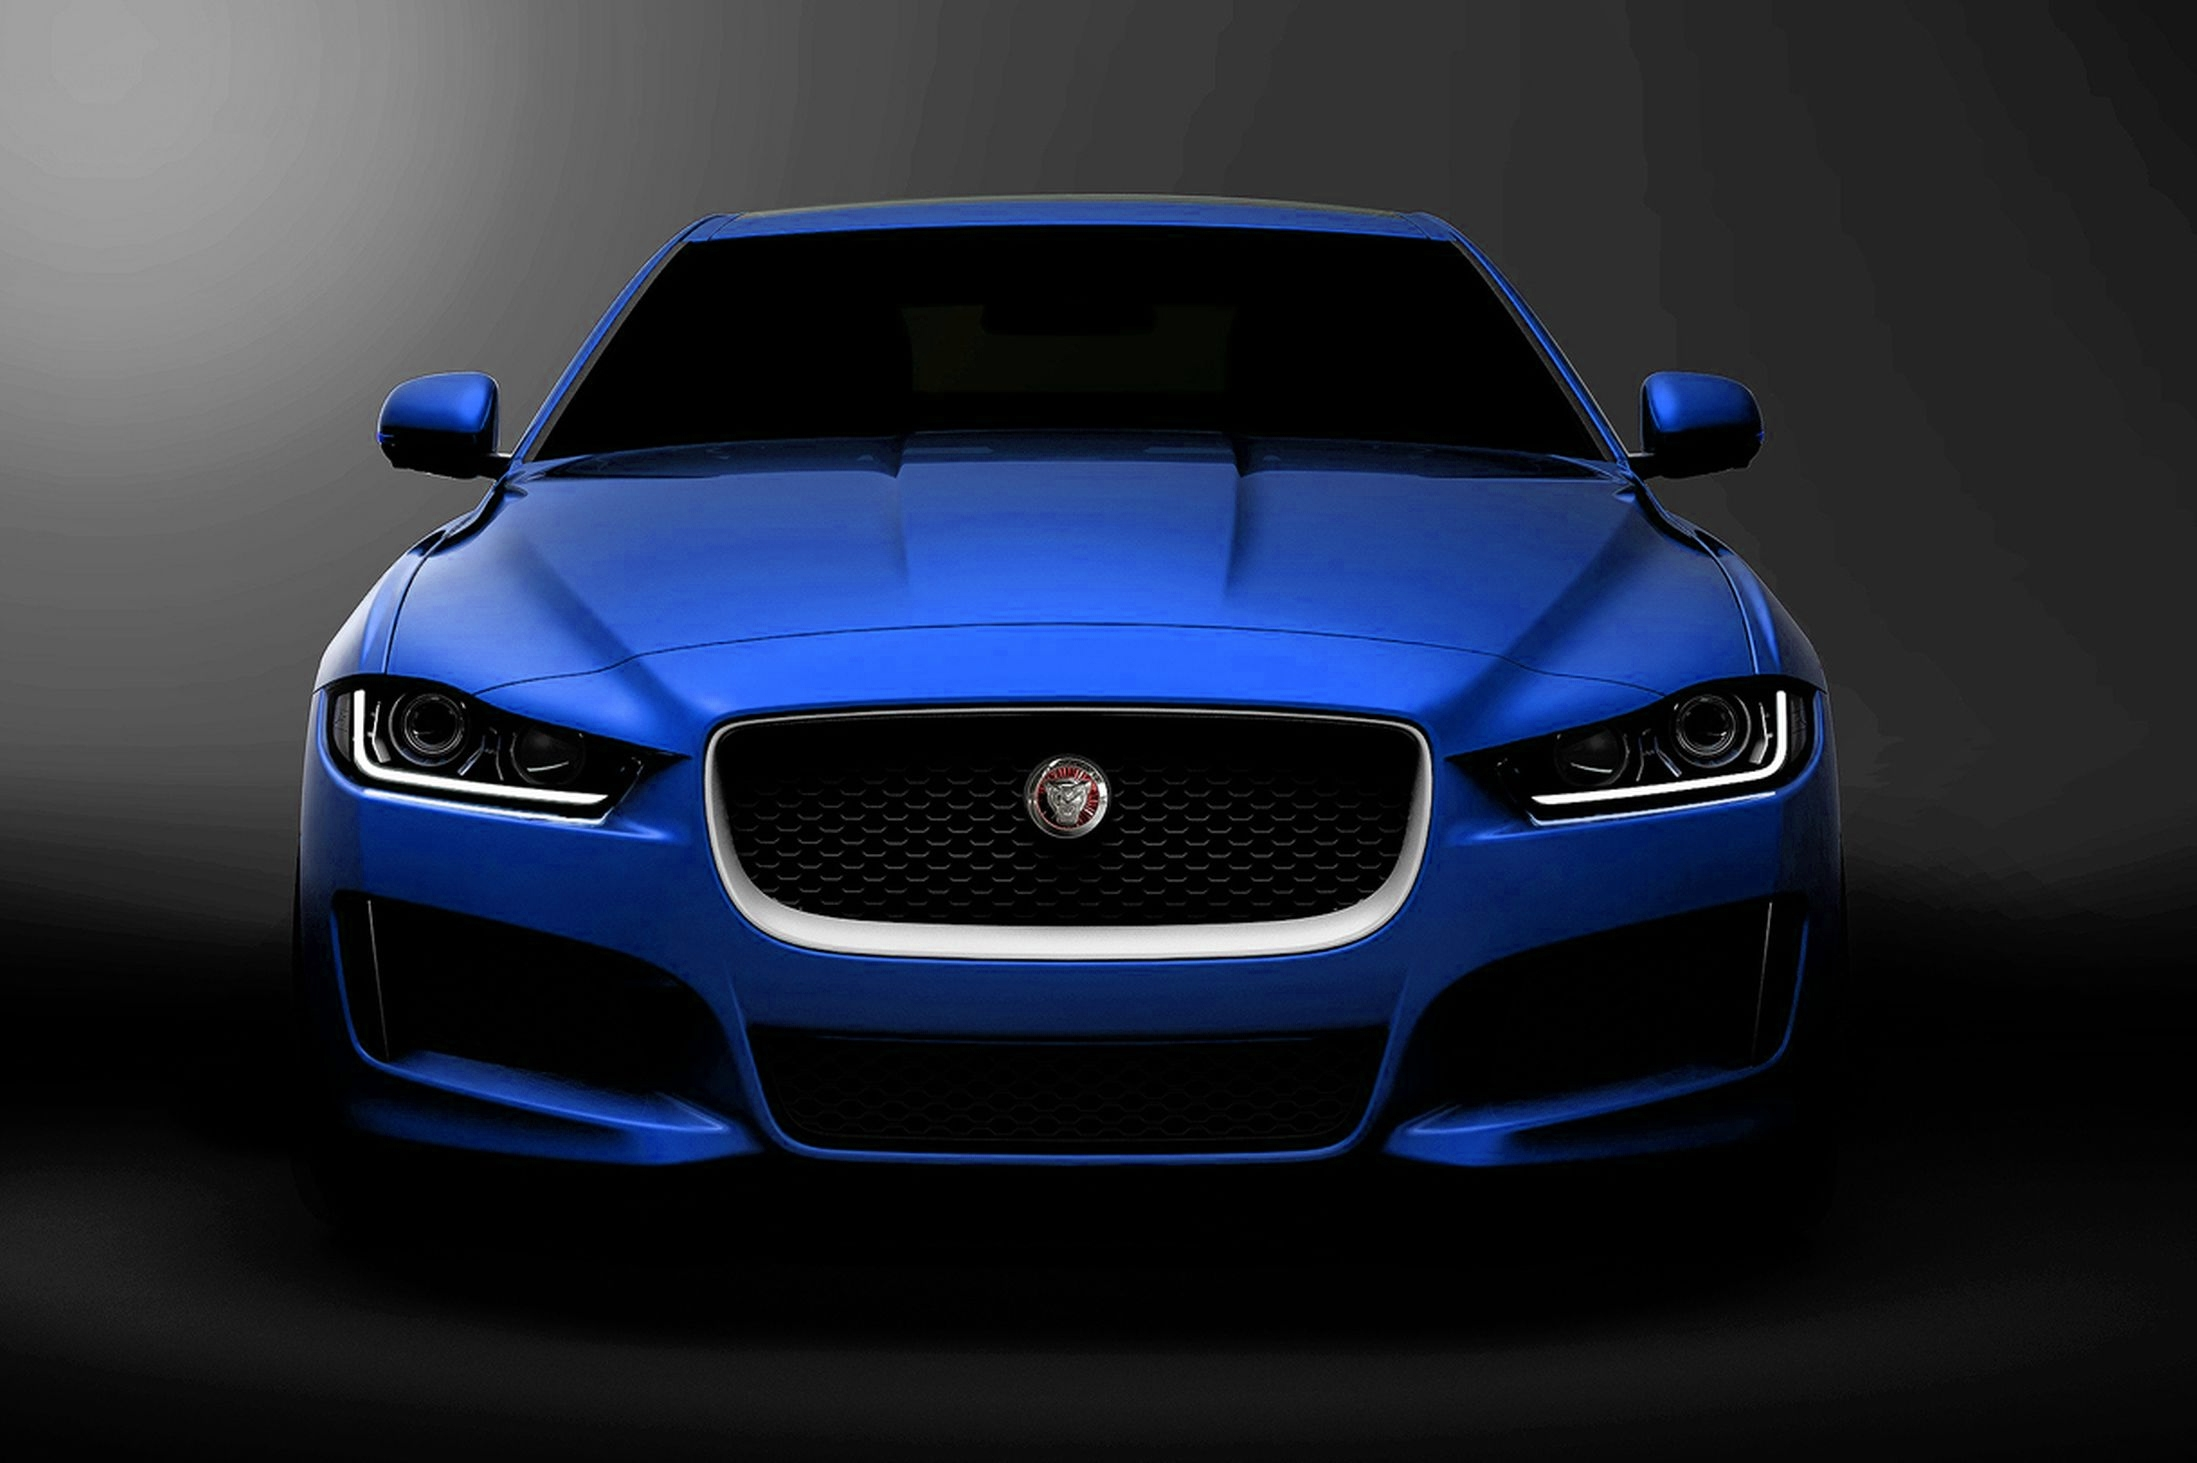 blue jaguar cars wallpapers hd wwwpixsharkcom images